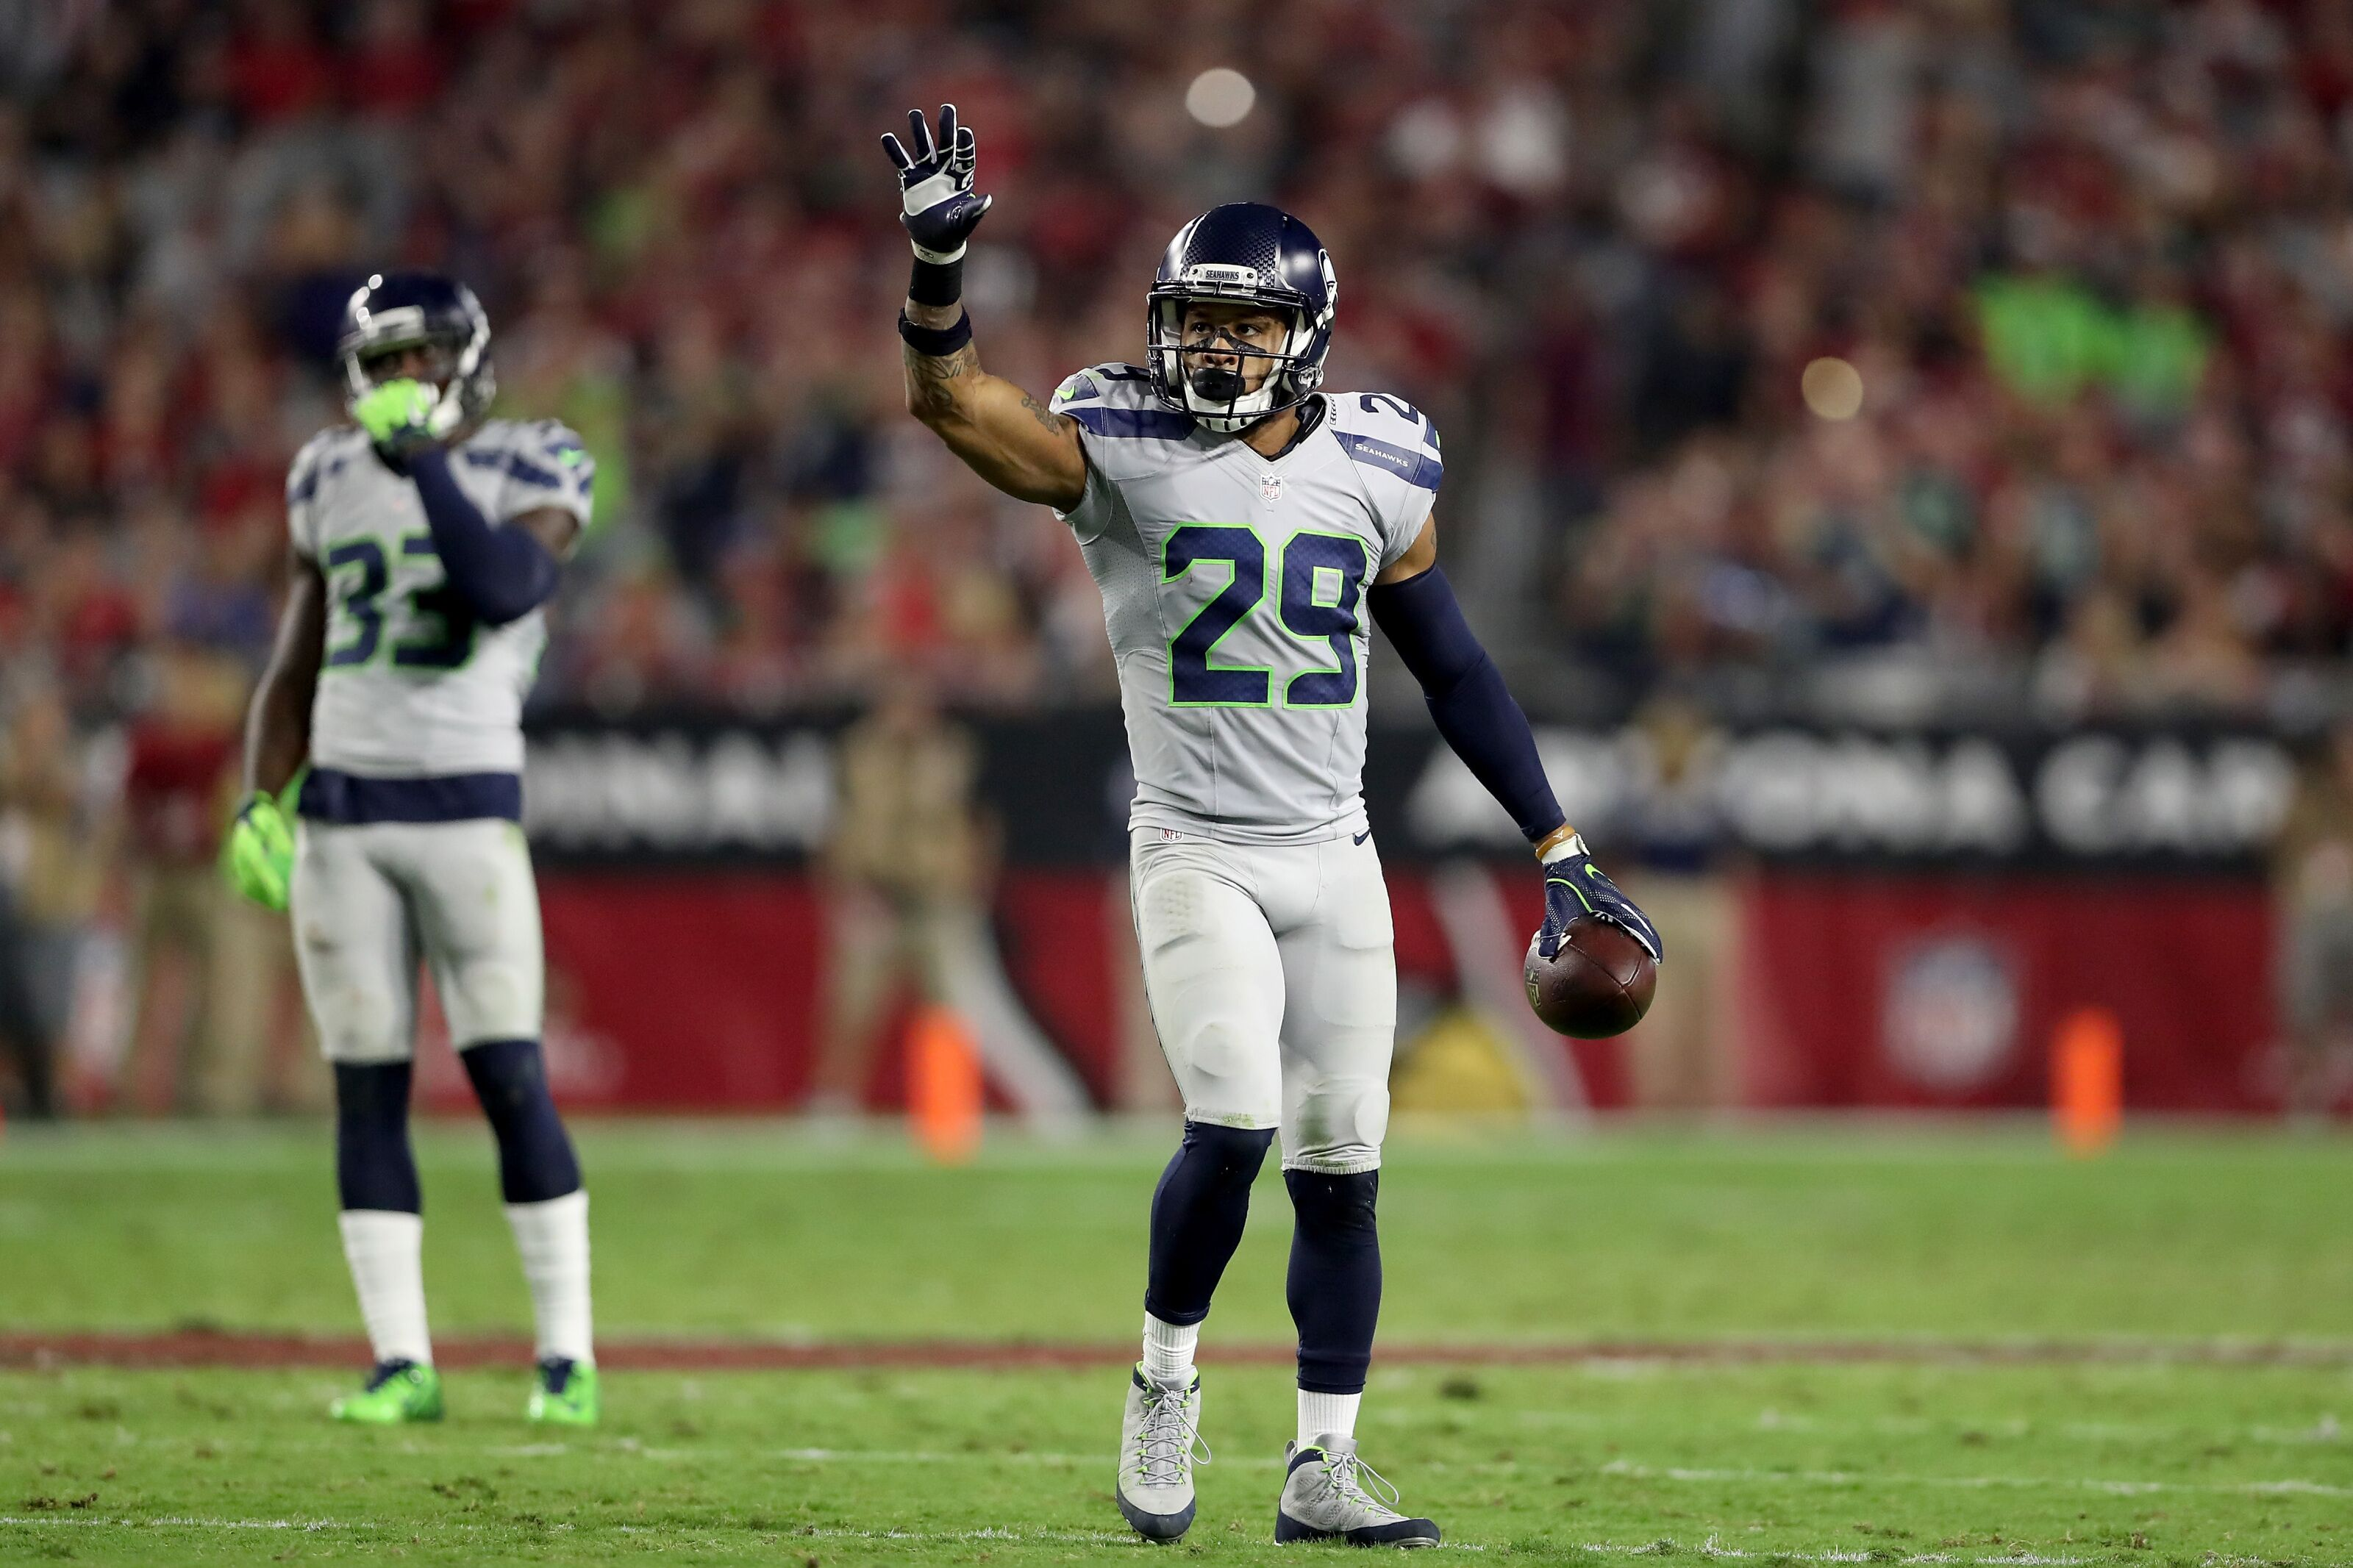 ace2422fd51 Seattle Seahawks: Earl Thomas plot thickens with tampering investigation